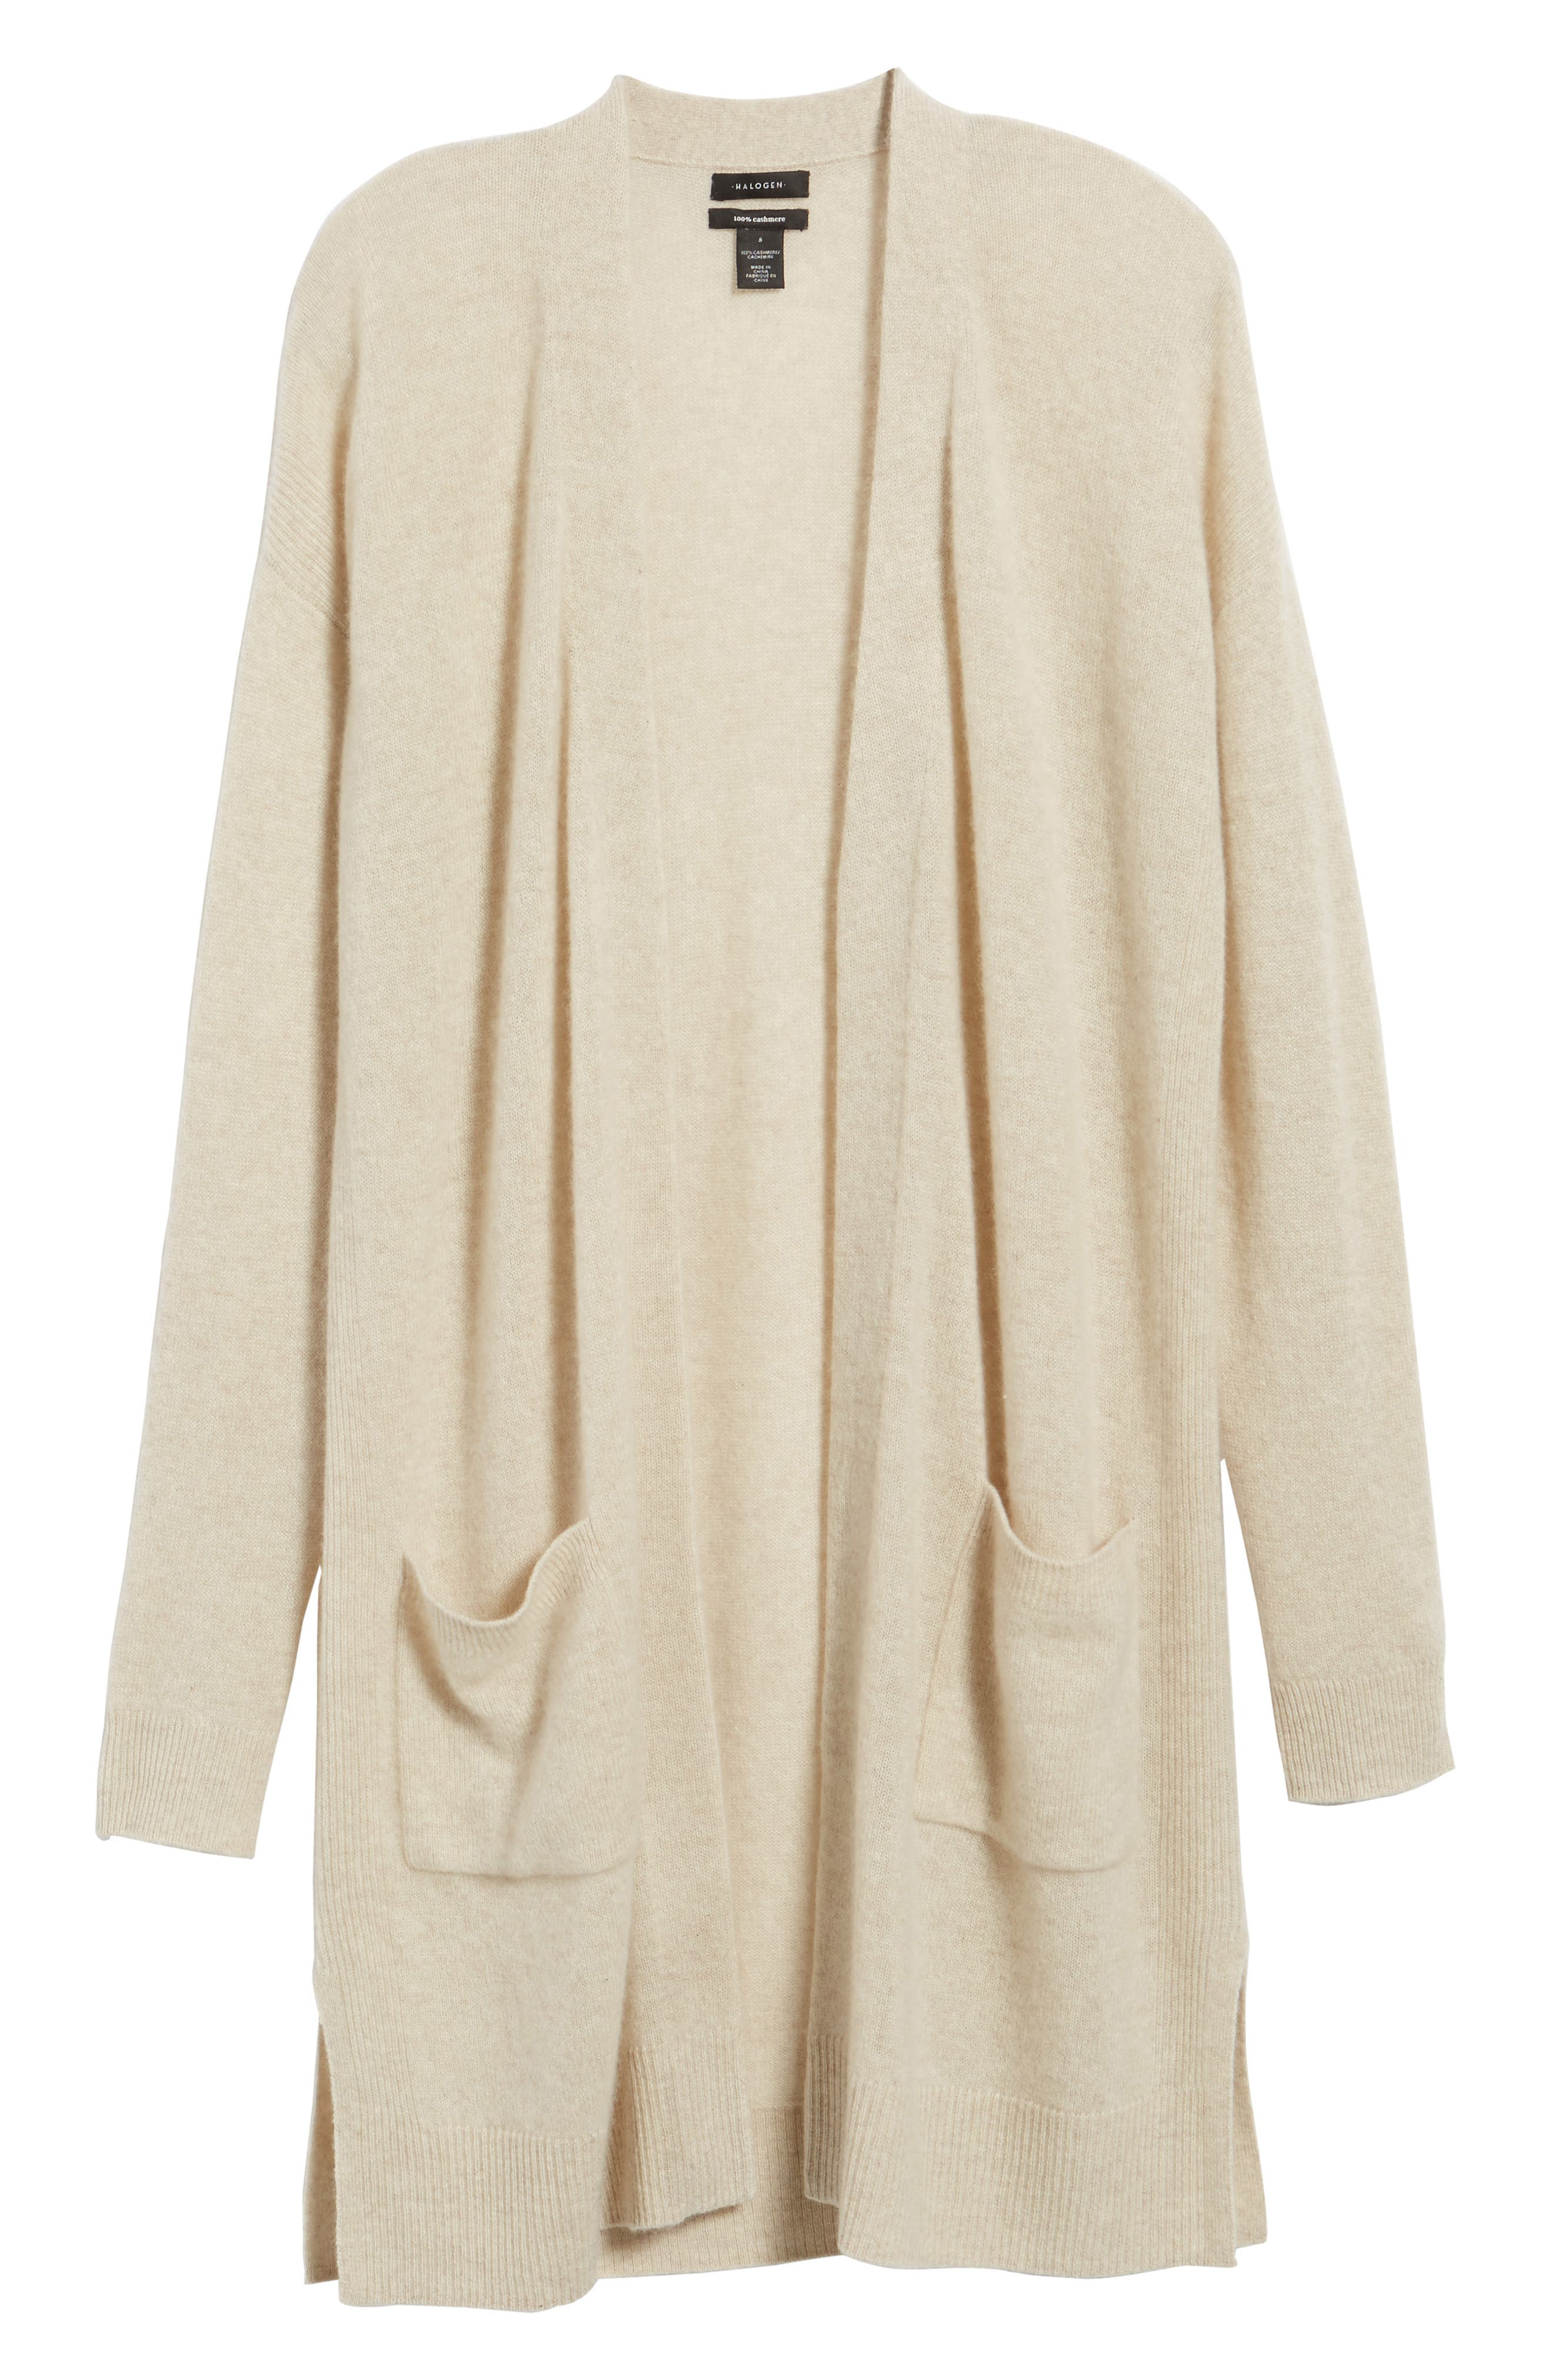 Rib Knit Wool & Cashmere Cardigan,                         Main,                         color, Heather Oatmeal